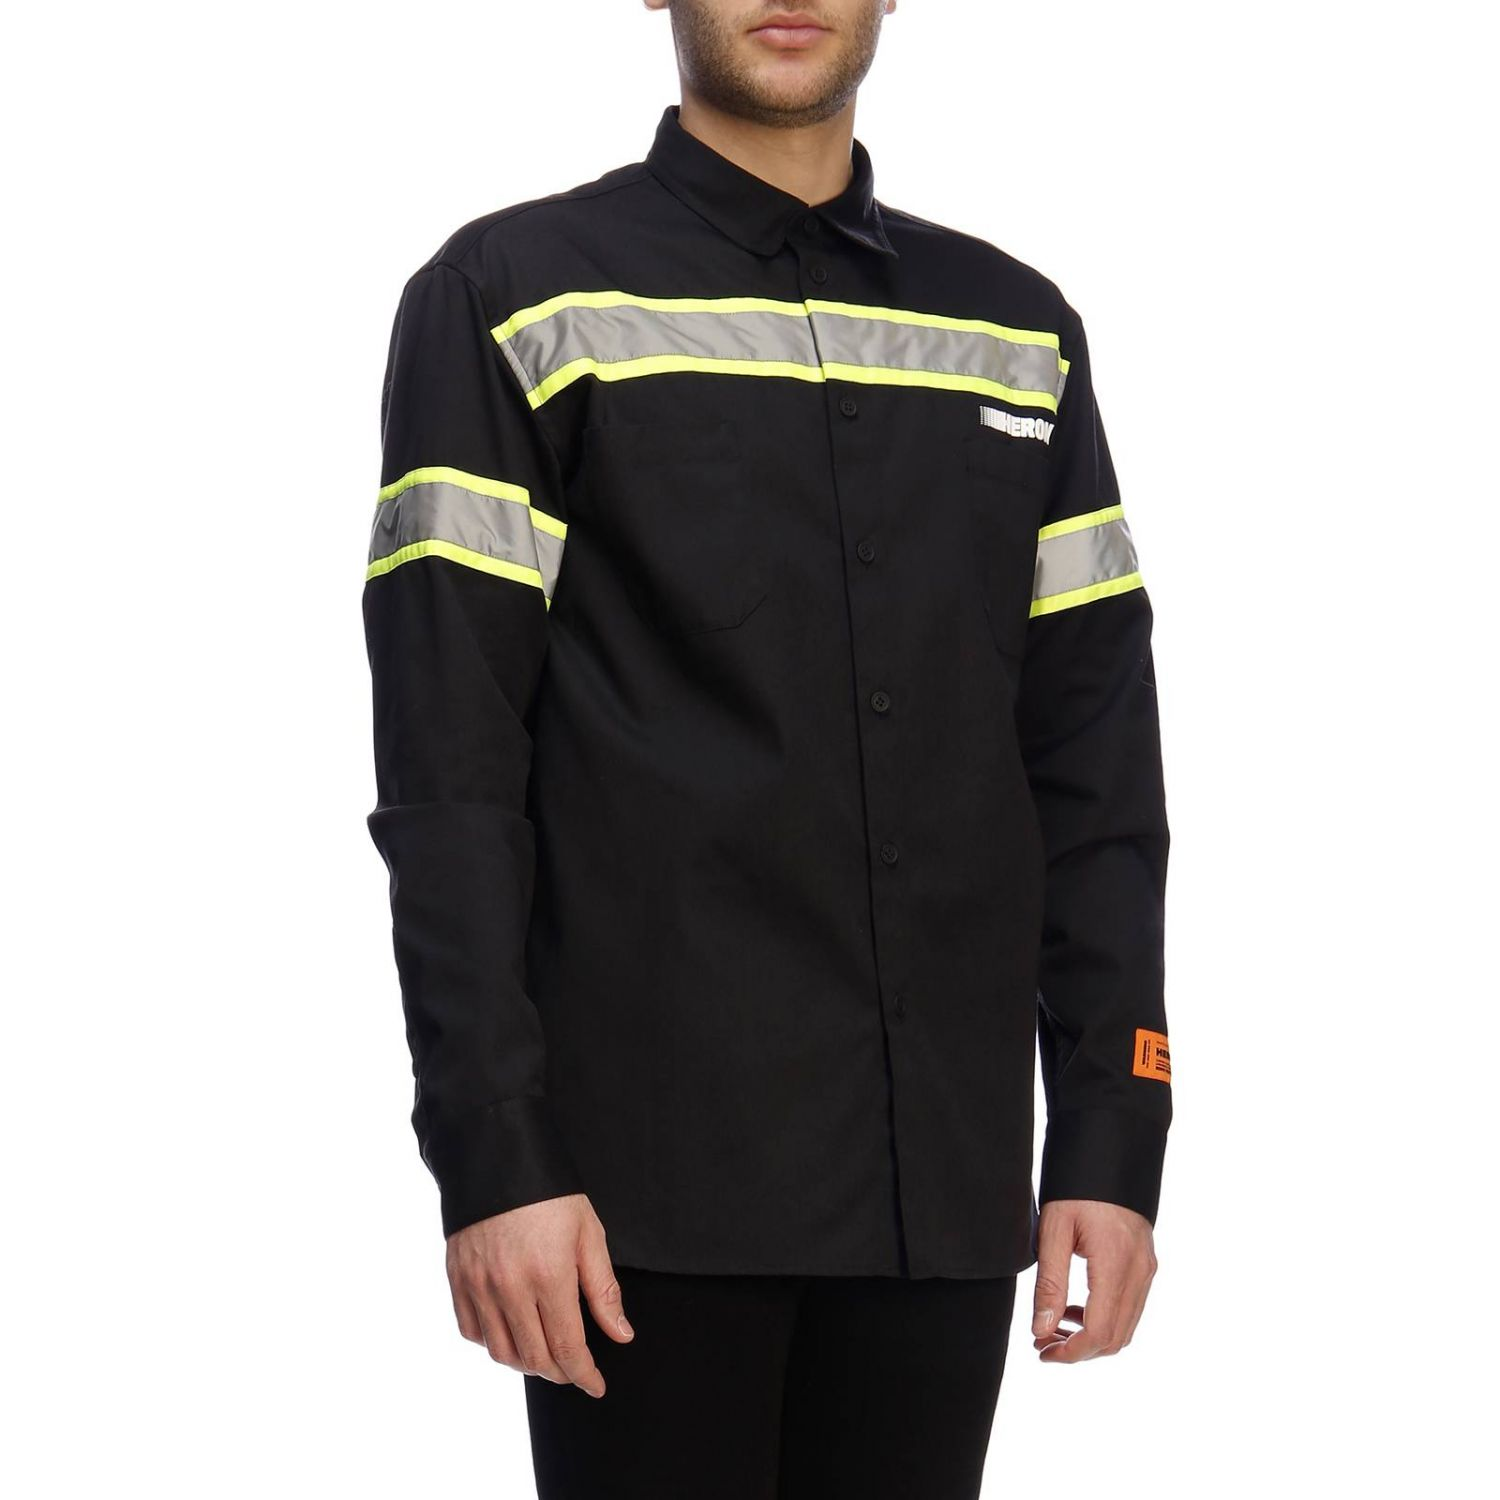 Shirt men Heron Preston black 2